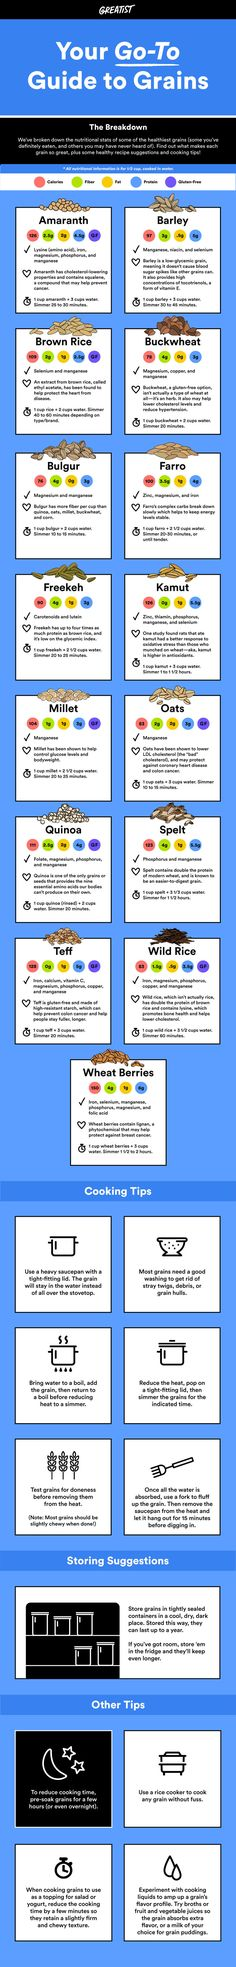 A VISUAL GUIDE TO GRAINS SO YOU KNOW HOW TO COOK, EAT, AND STORE THEM We've broken down the nutritional stats and cooking tips of the world's healthiest grains. #greatist http://greatist.com/health/guide-to-healthier-grains-infographic